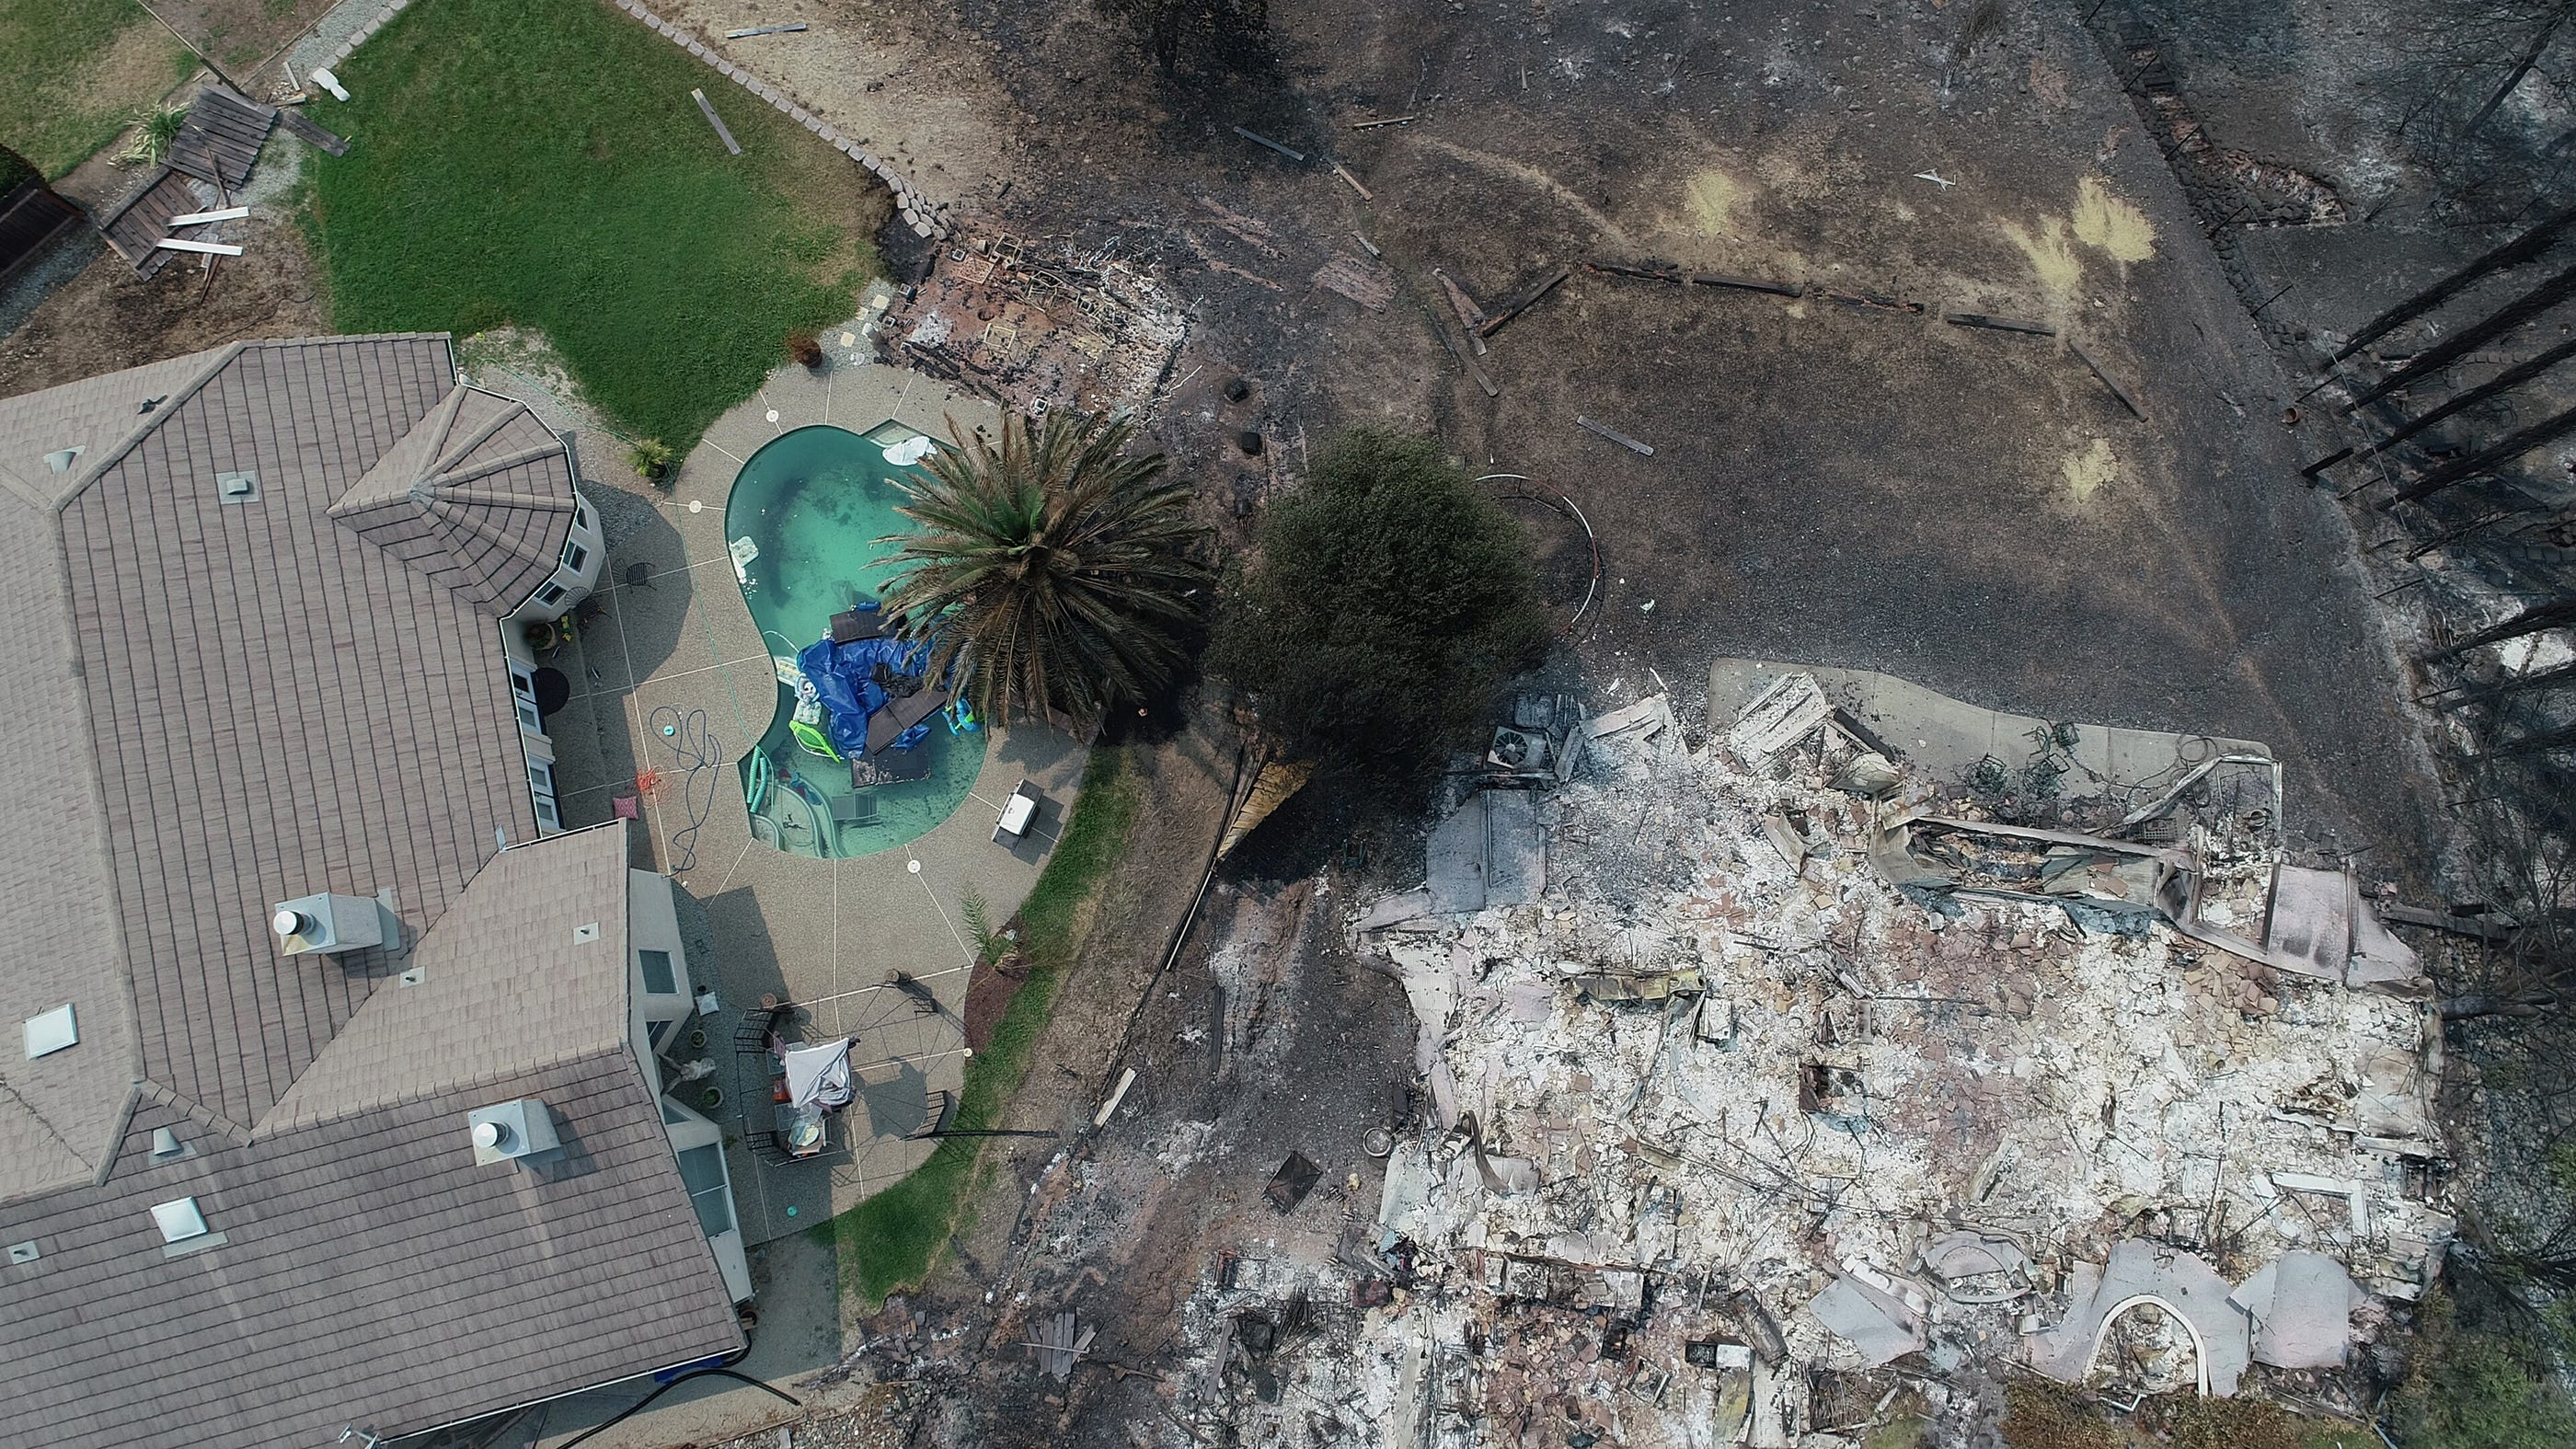 Drone aerials show California wildfire devastation from above